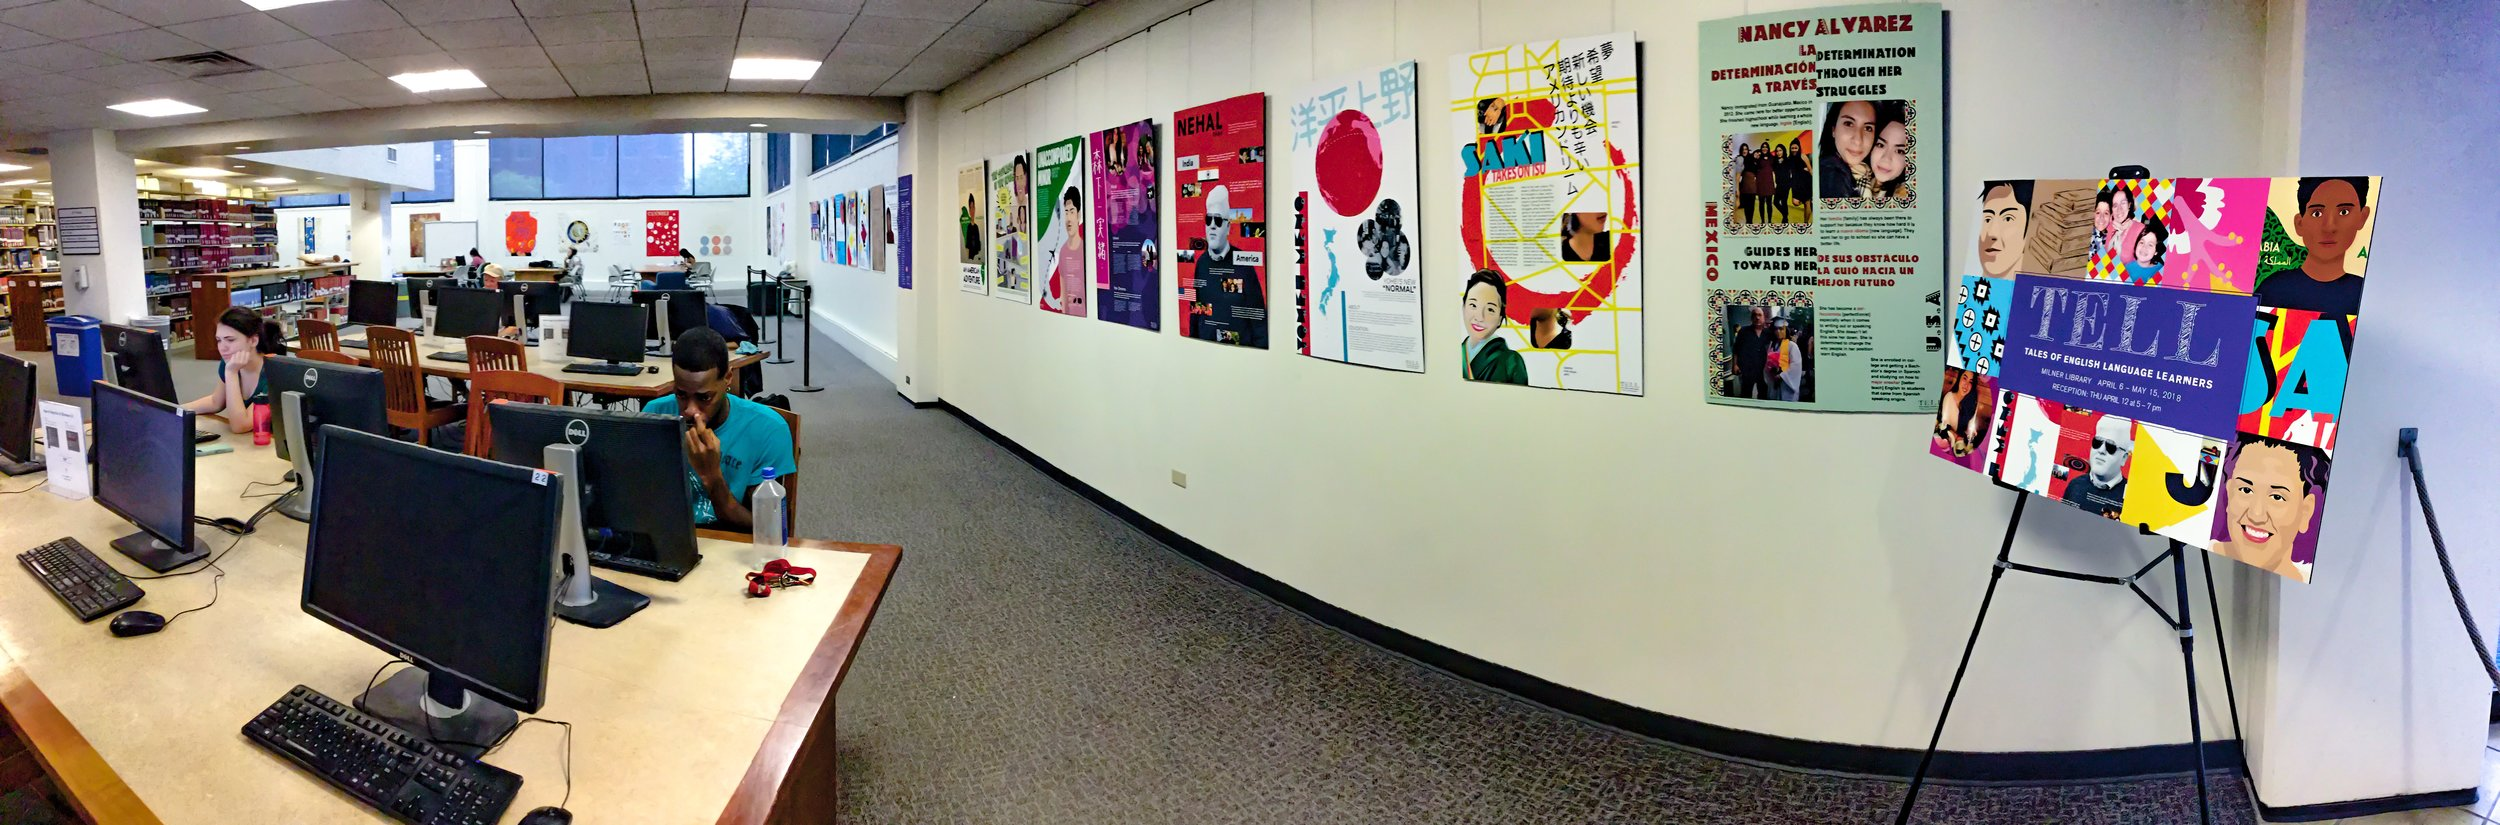 Food For Thought is but one graphic exhibit running through the weekend at ISU's Milner Library.  TELL relates through visuals and narrative the experience of young, local English language learners from a variety of cultures